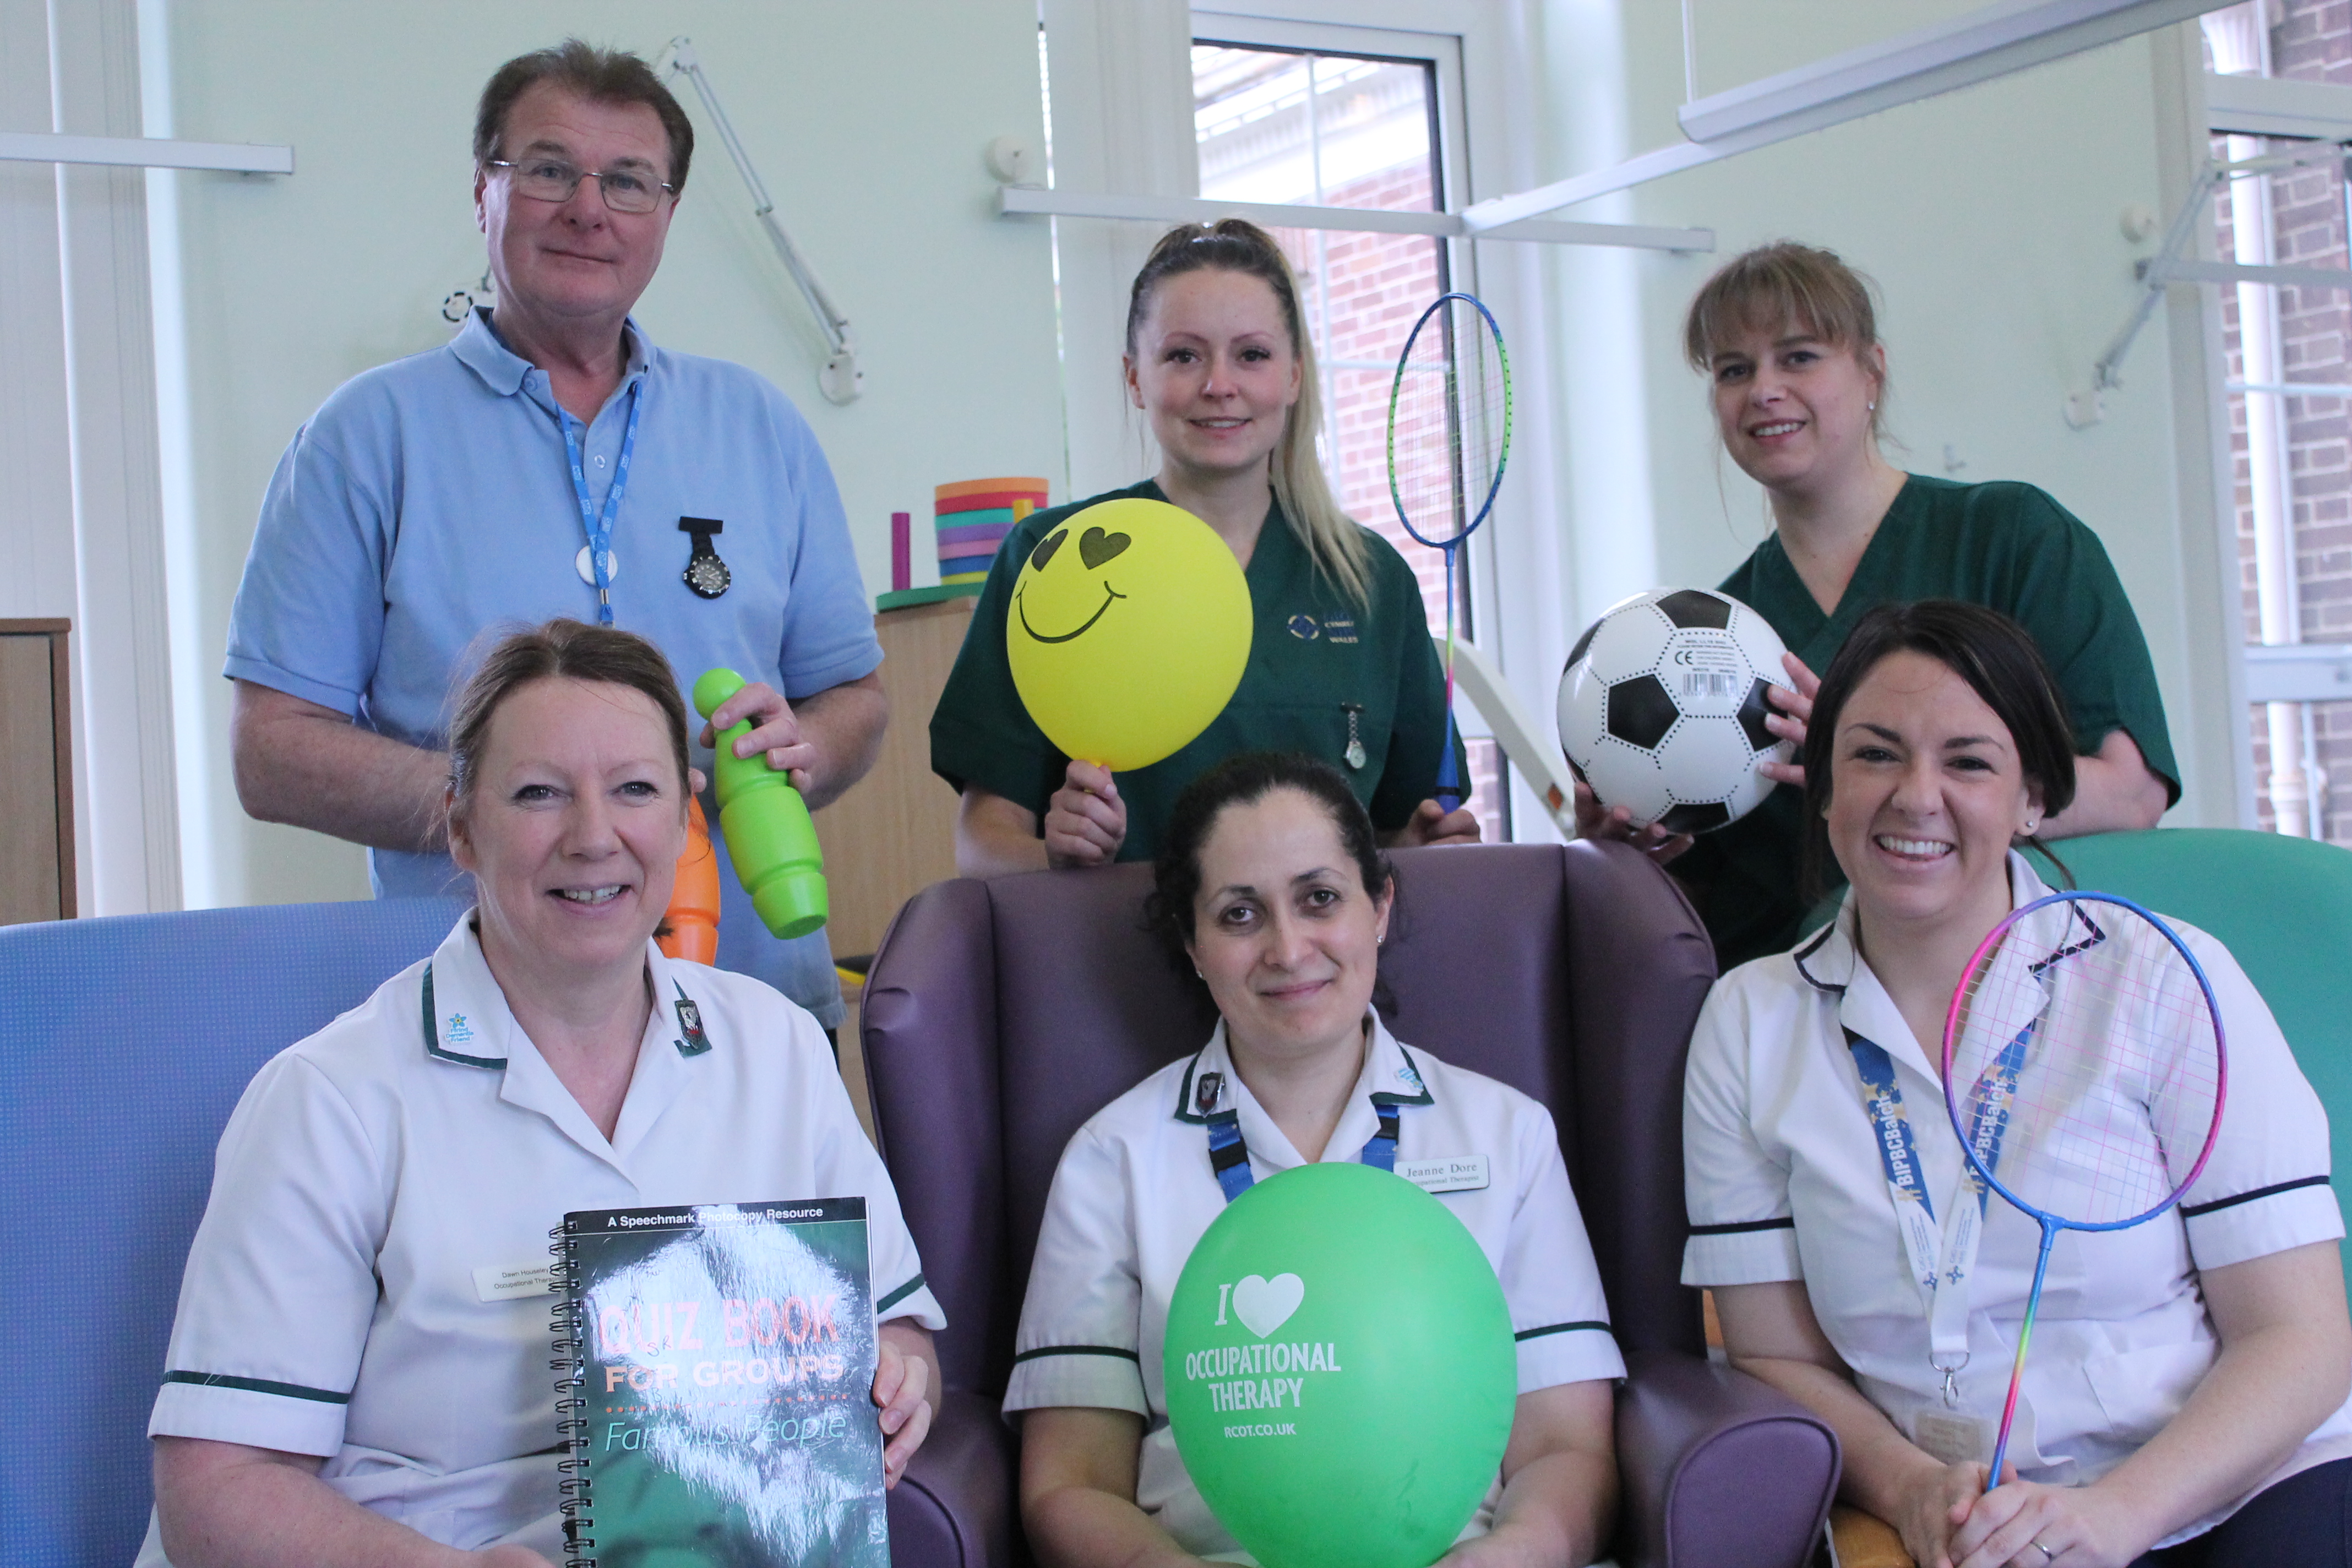 Patients encouraged to get active as part of national health improvement drive